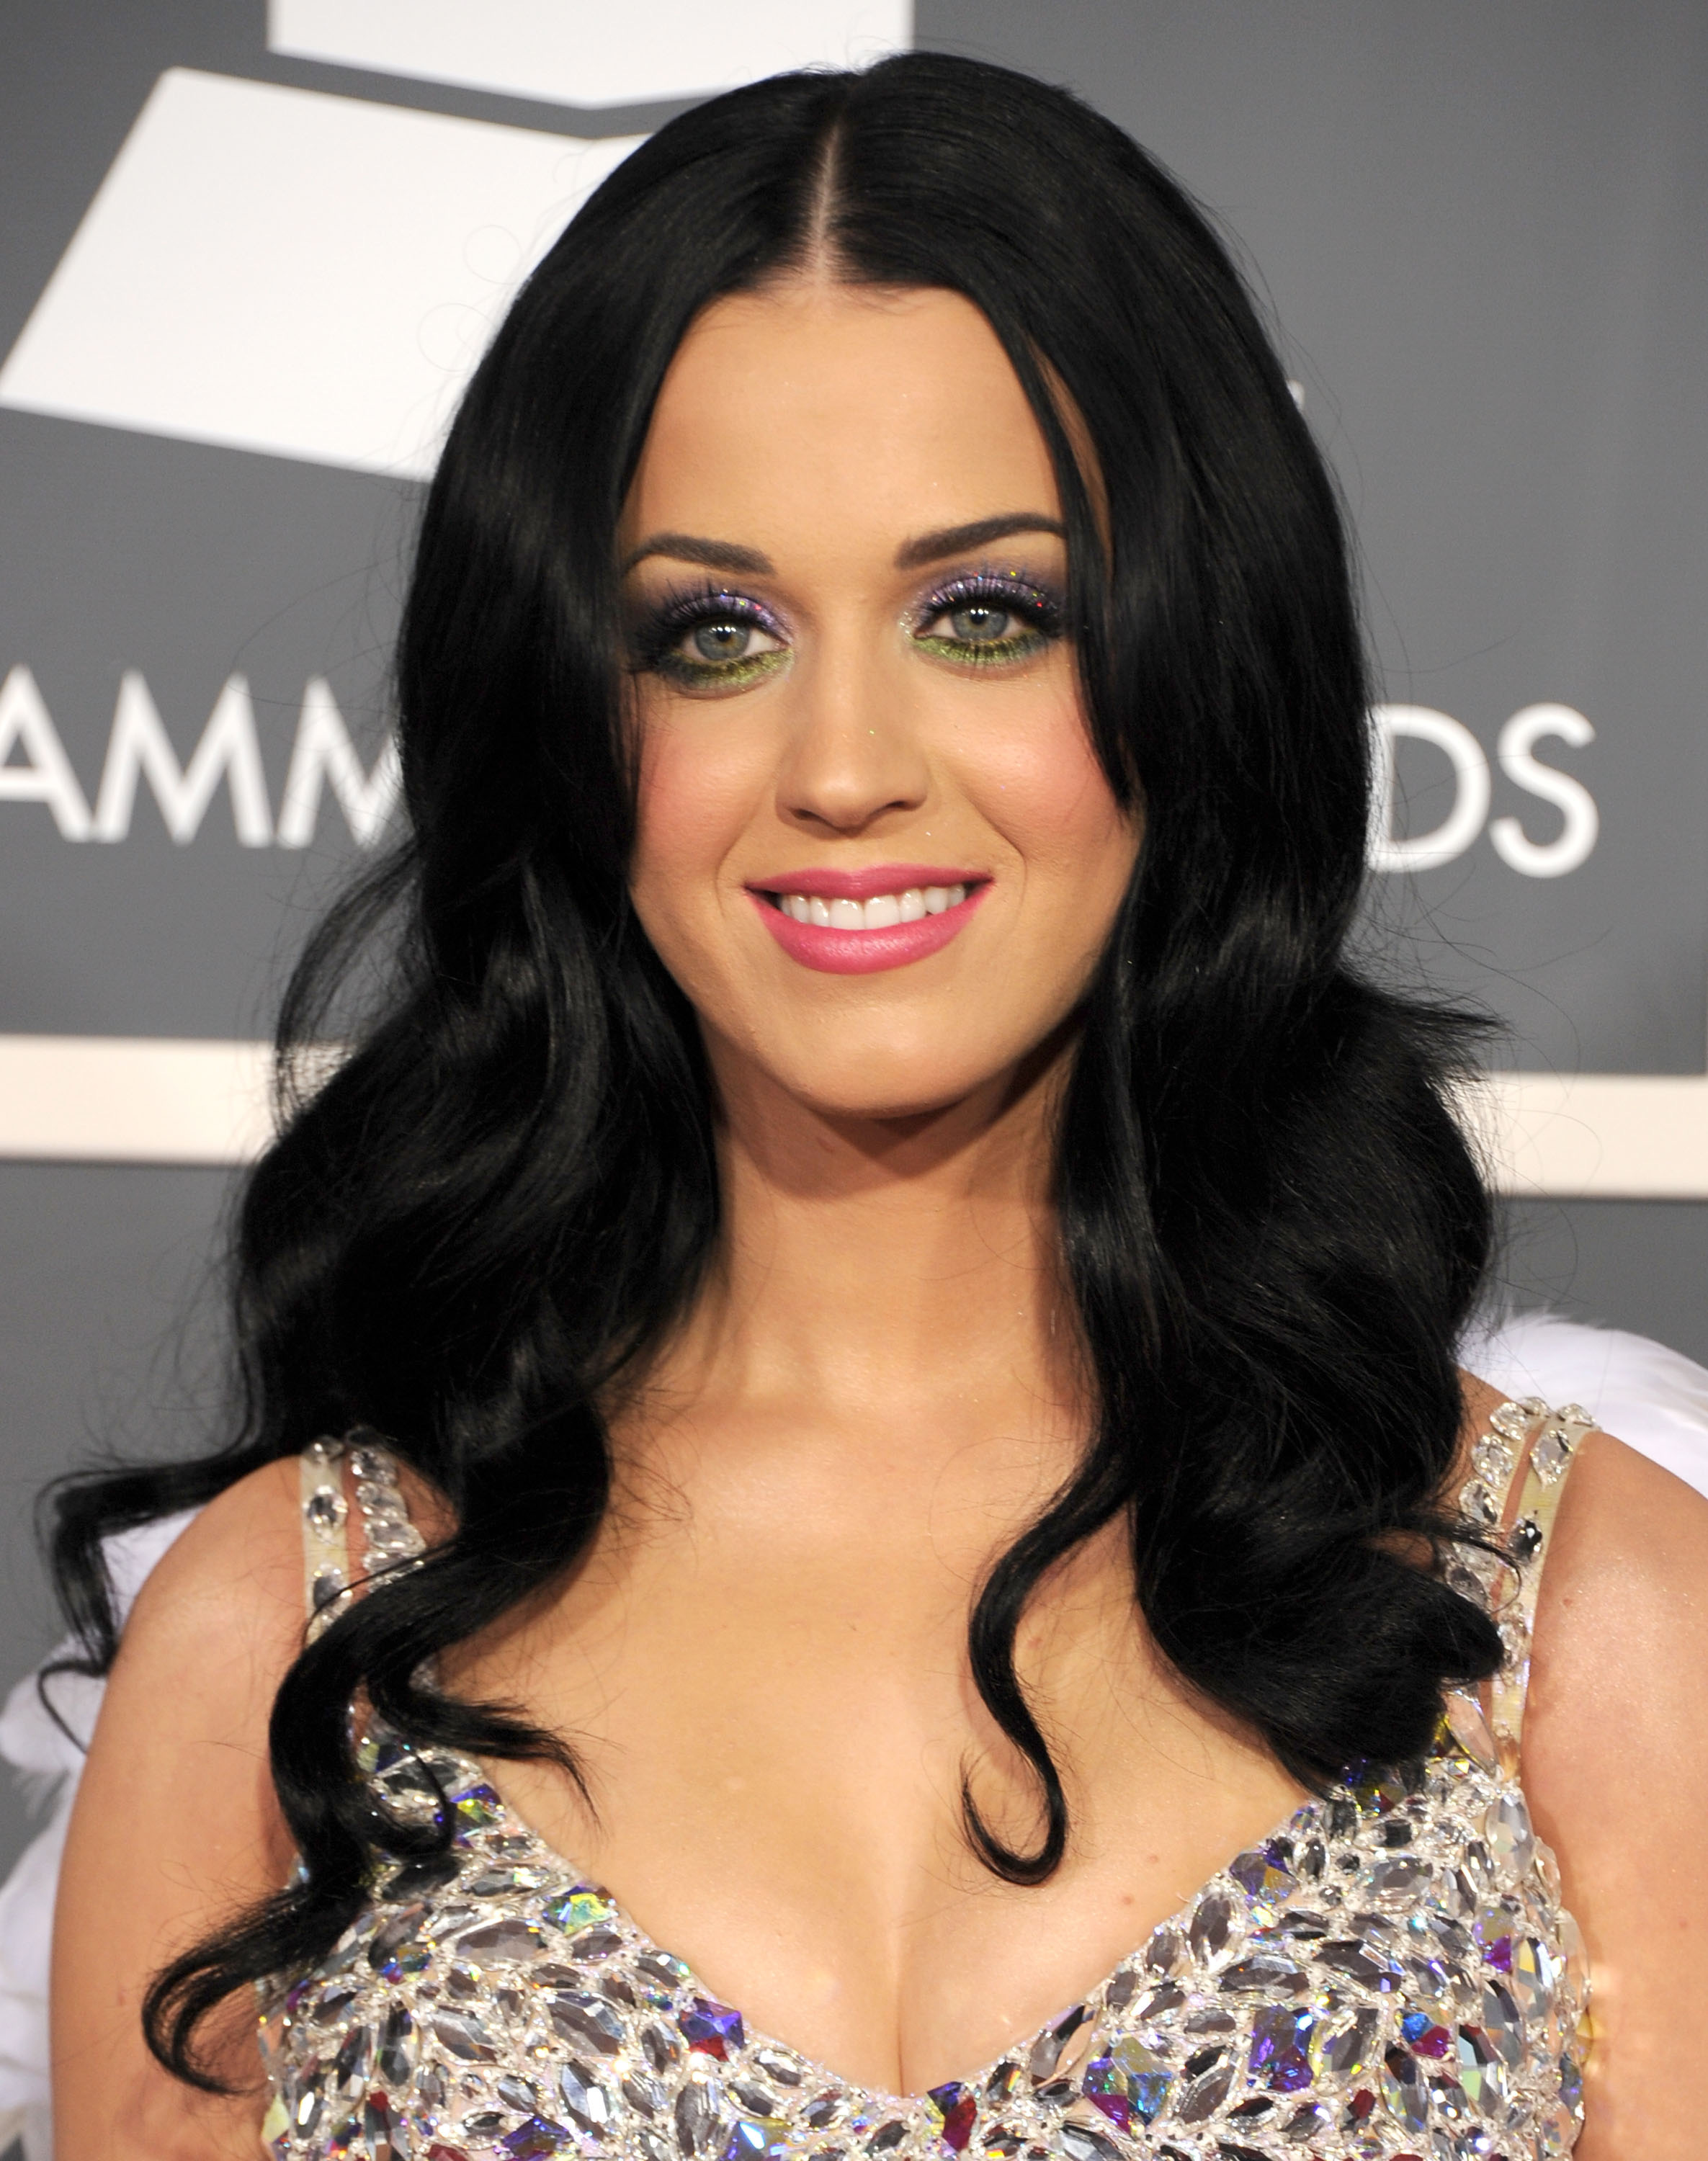 Singer Katy Perry - age: 32